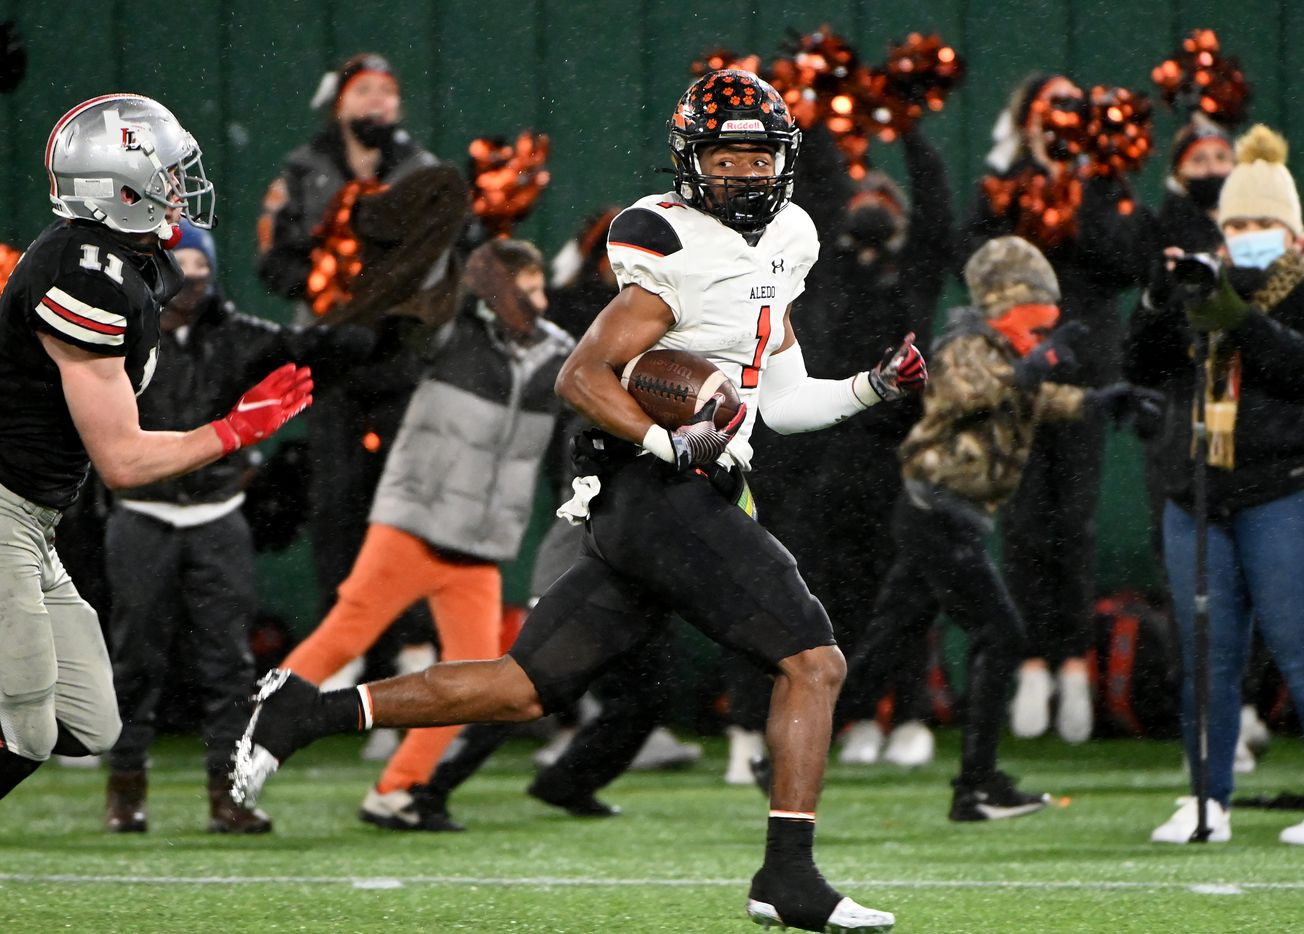 Aledo's Jo Jo Earle (1) runs past Lovejoy's Chief Collins for a touchdown in the first quarter of the Class 5A Division II Region II final high school football game between Aledo and Lovejoy, Friday, Jan. 1, 2021, in Arlington, Texas. (Matt Strasen/Special Contributor)